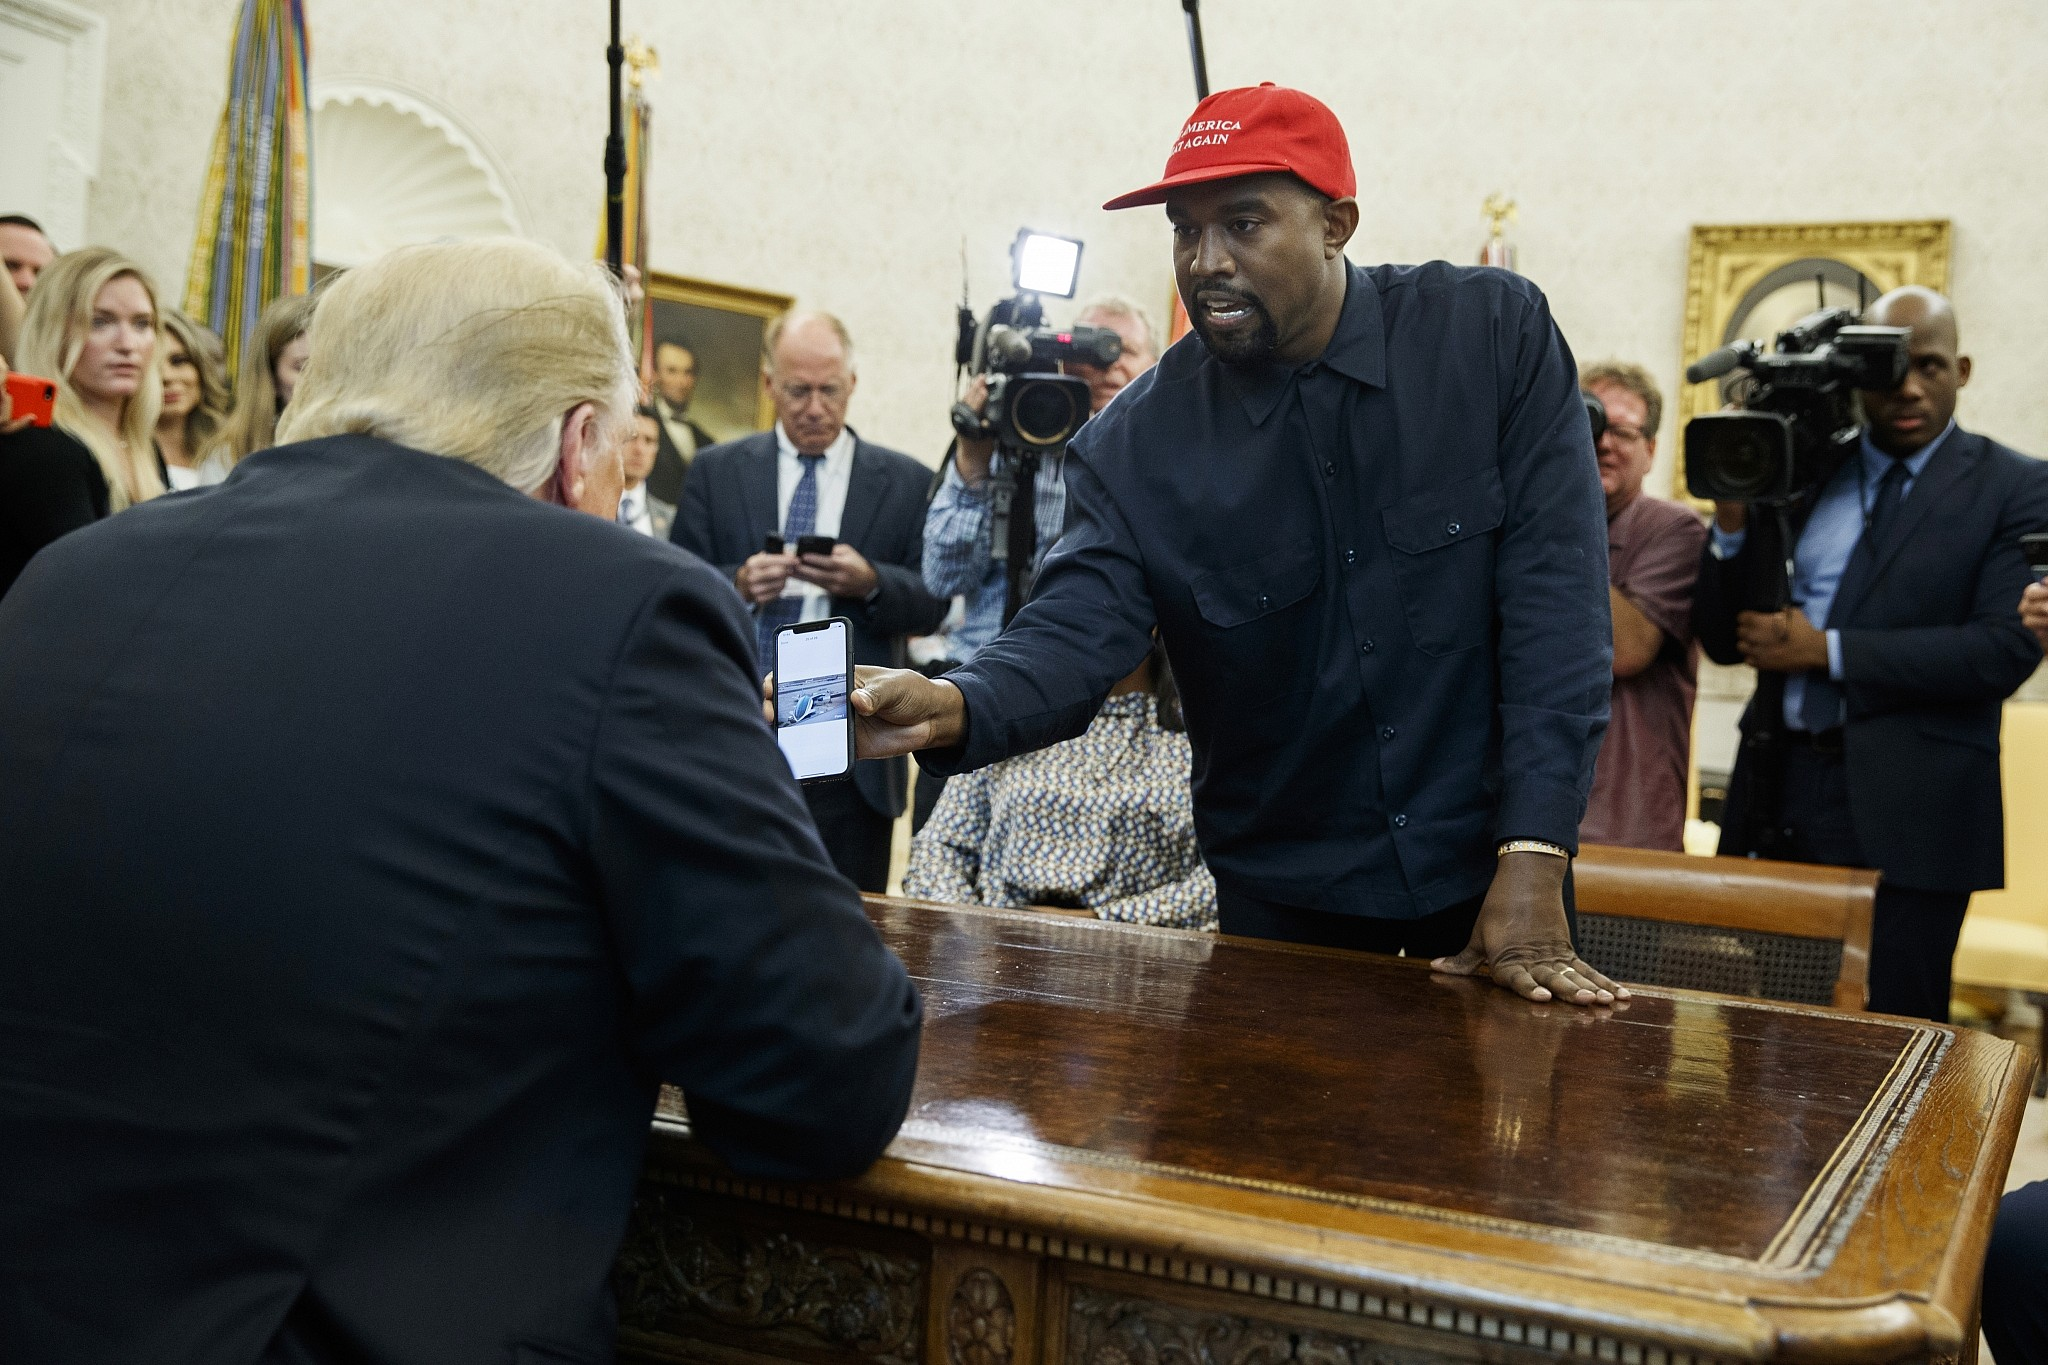 Does Donald Trump Listen to Kanye West's Music? Here's What We Know